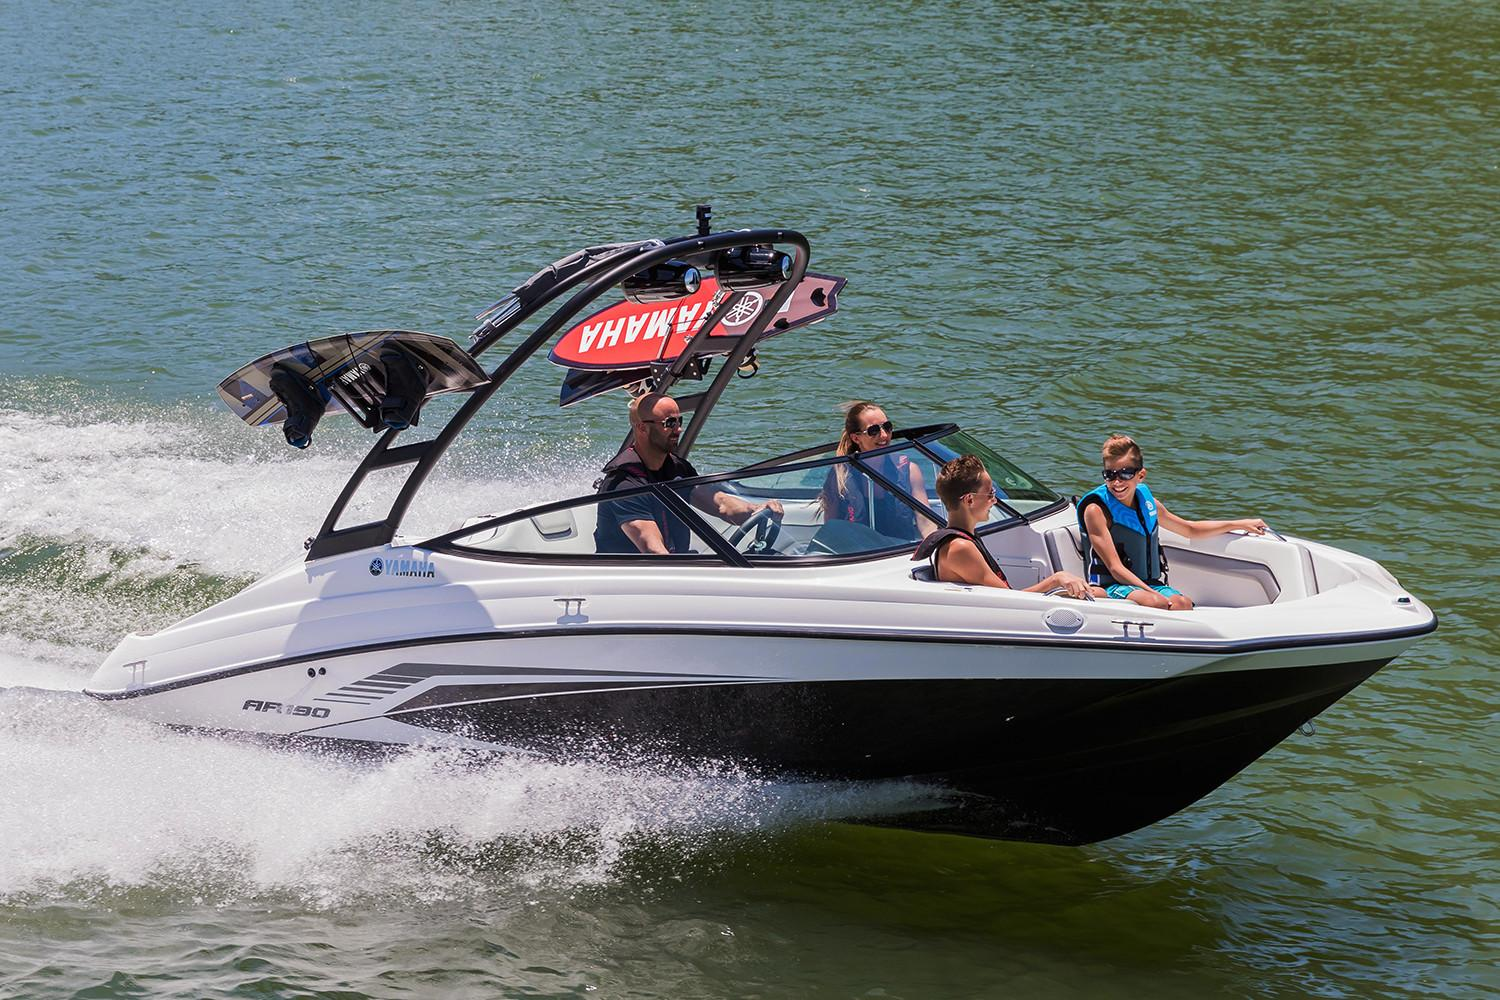 New 2018 yamaha ar190 power boats inboard in murrieta ca for 2018 yamaha jet boat